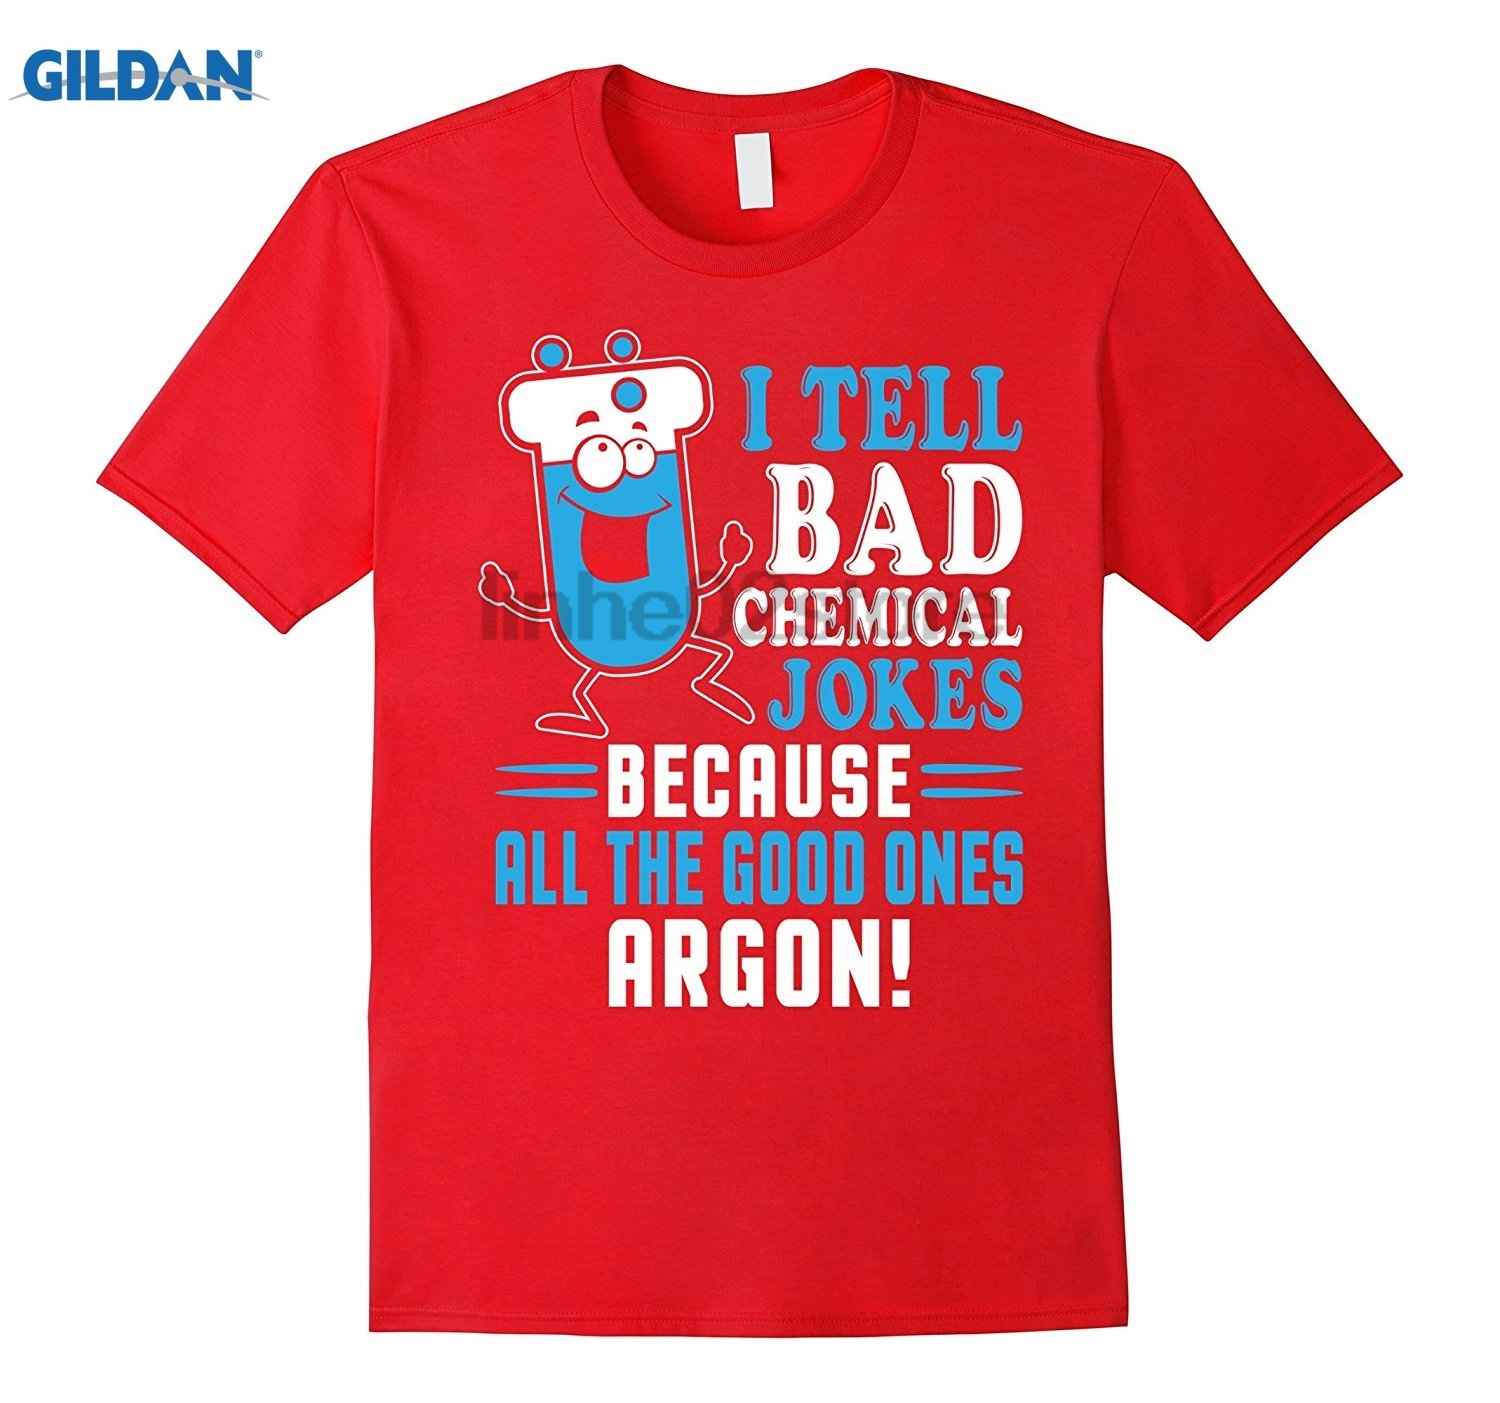 GILDAN I Tell Bad Chemical Jokes Because All Good Ones Argon Tshirt Mothers Day Ms. T-shirt summer dress T-shirt